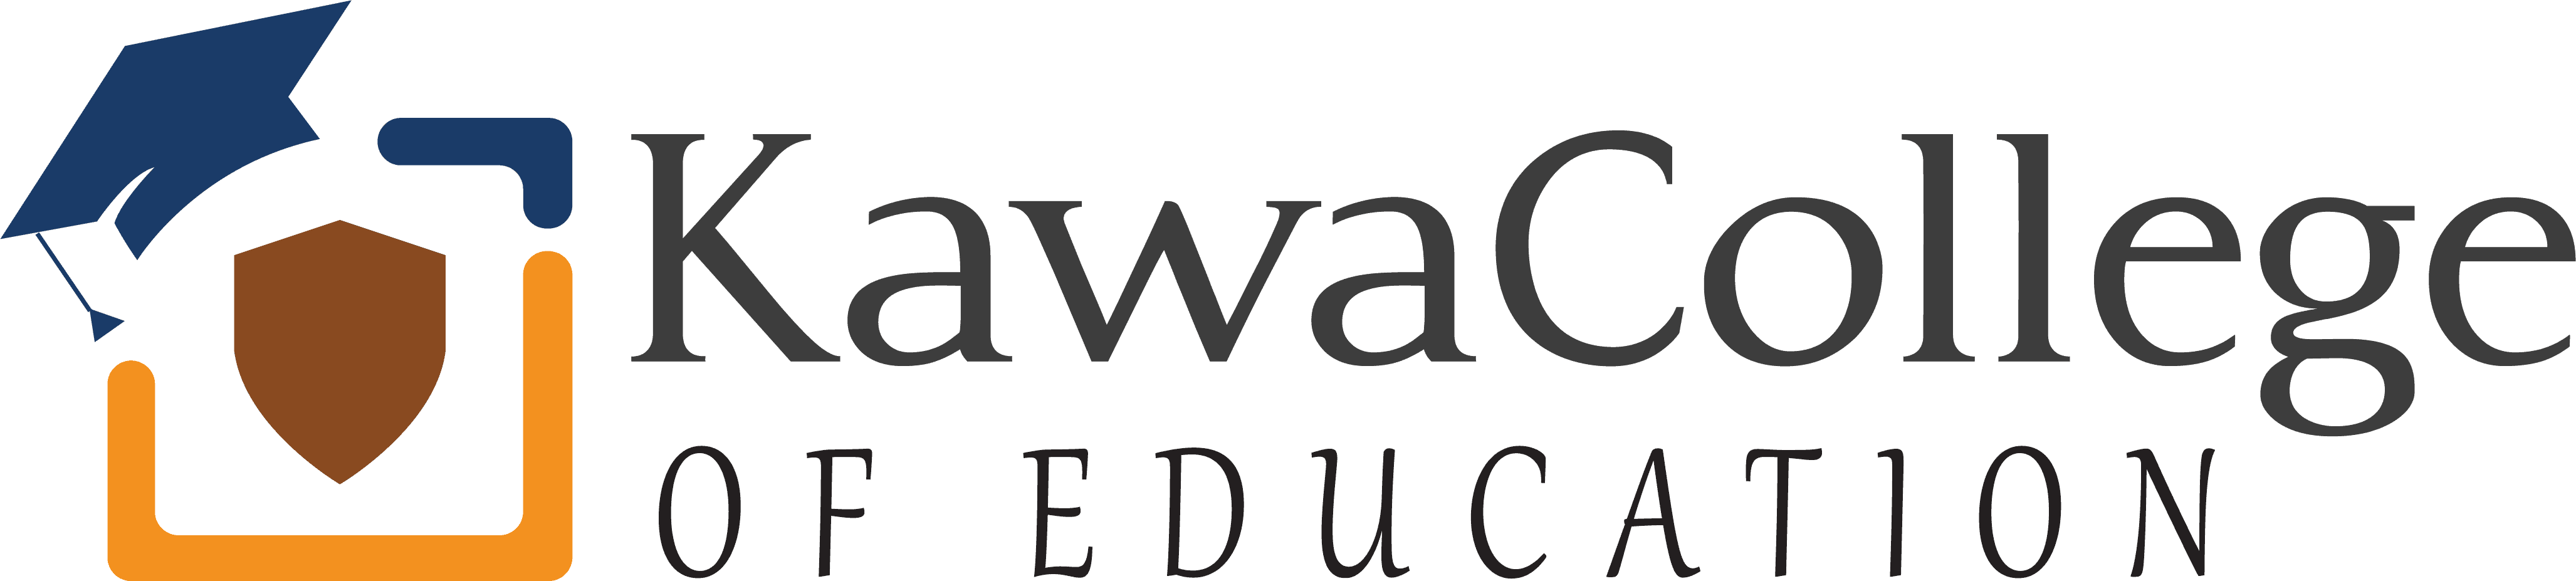 kawacollegeofeducation.com